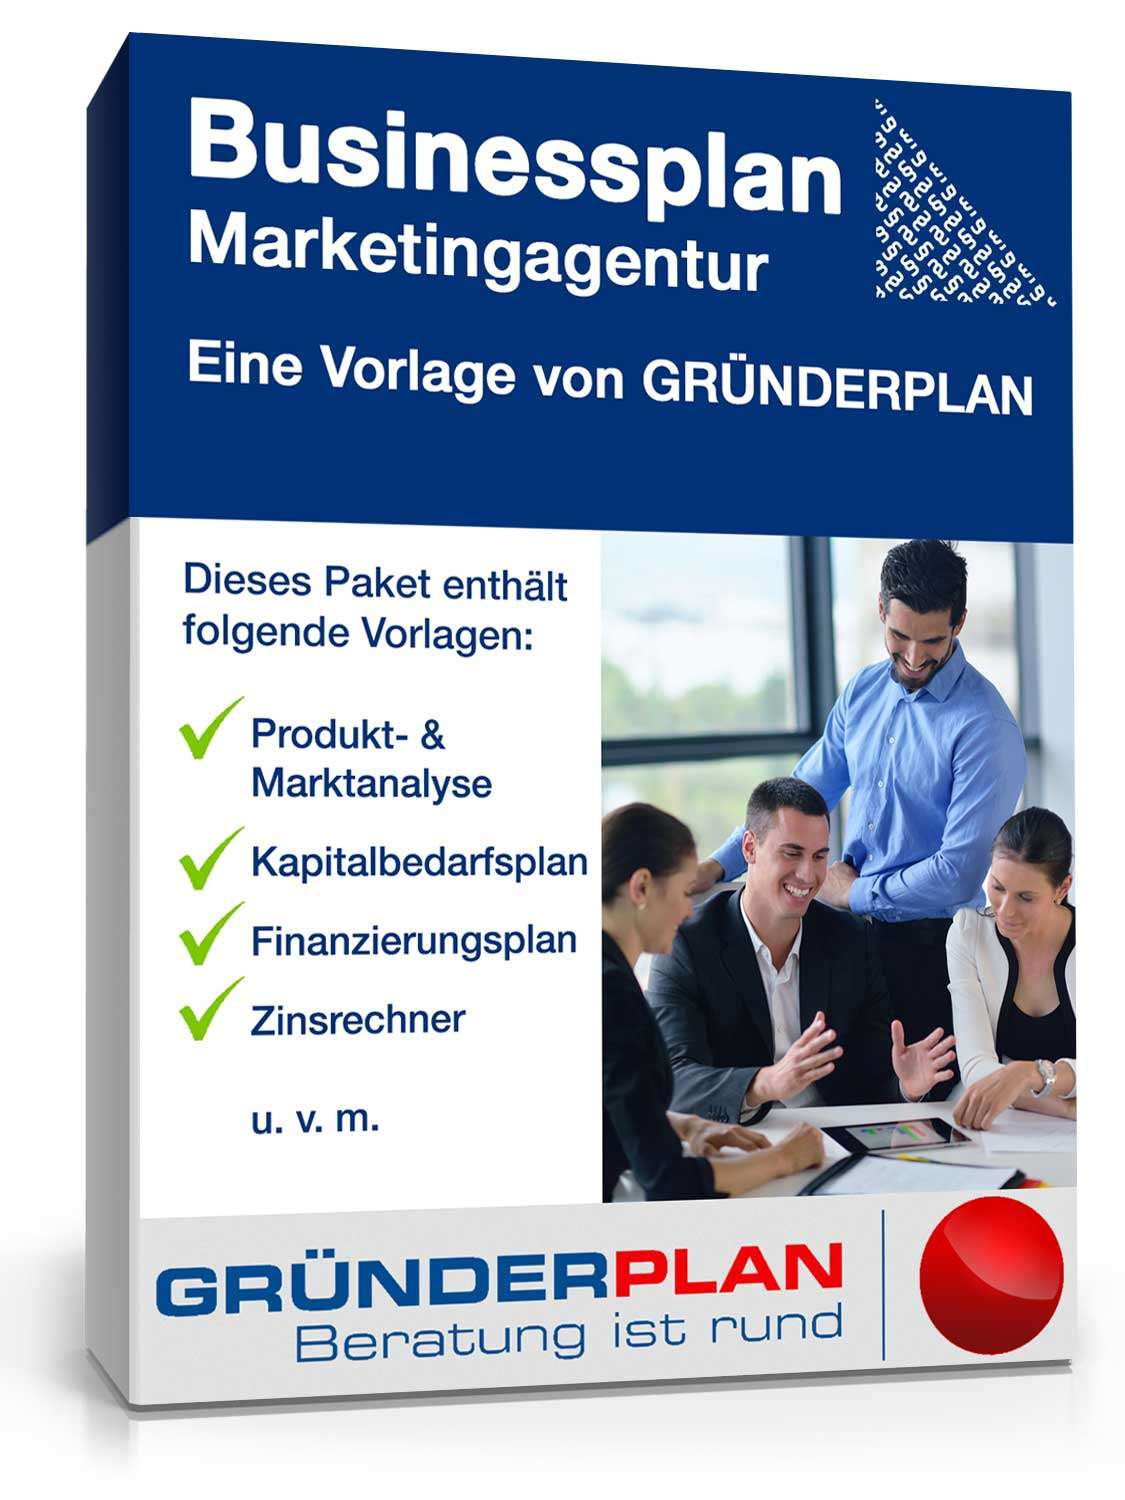 Businessplan Marketingagentur von Gründerplan